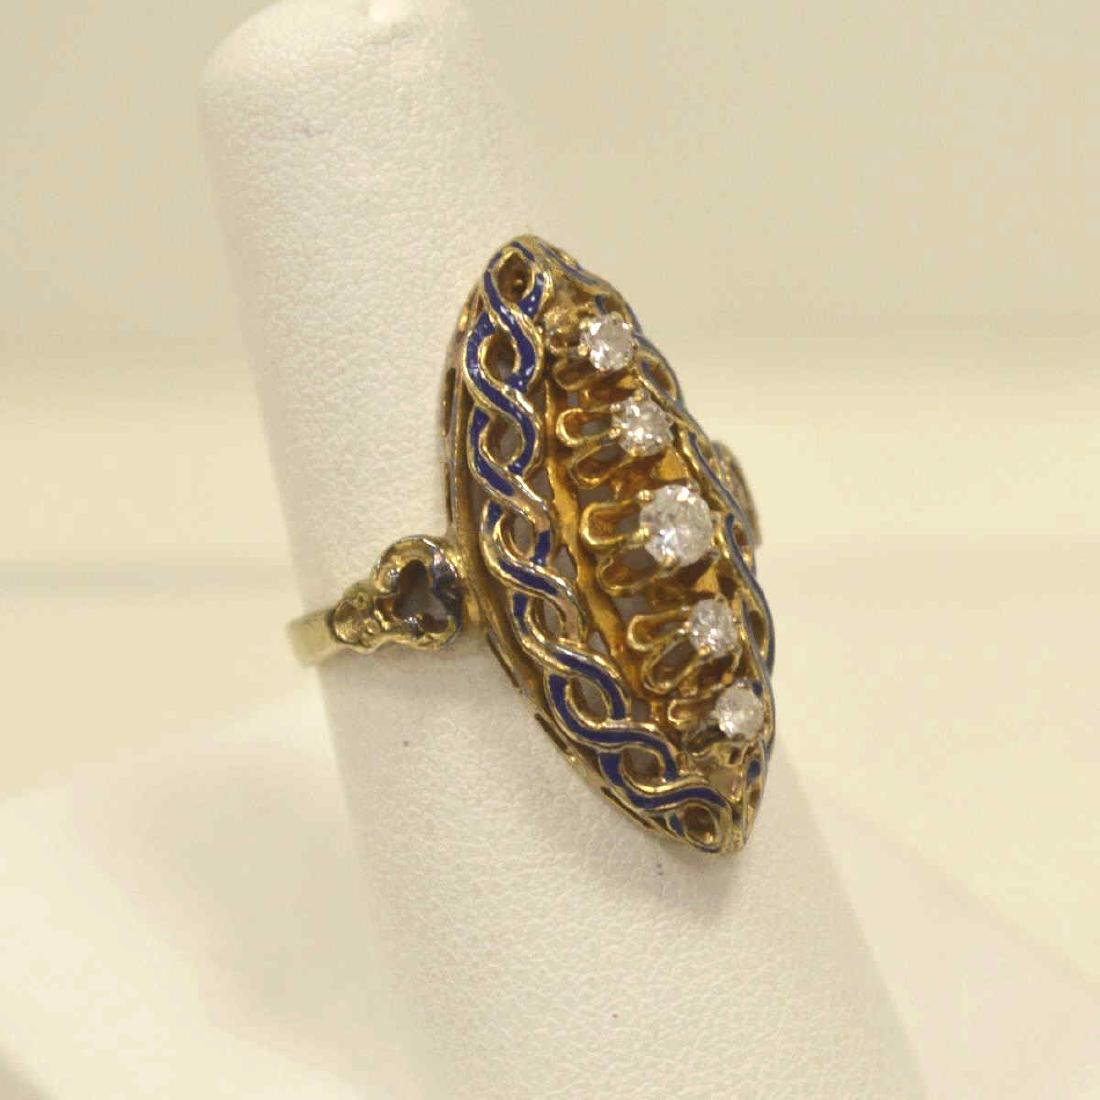 Vintage 14kt yellow gold diamond fashion ring - 2